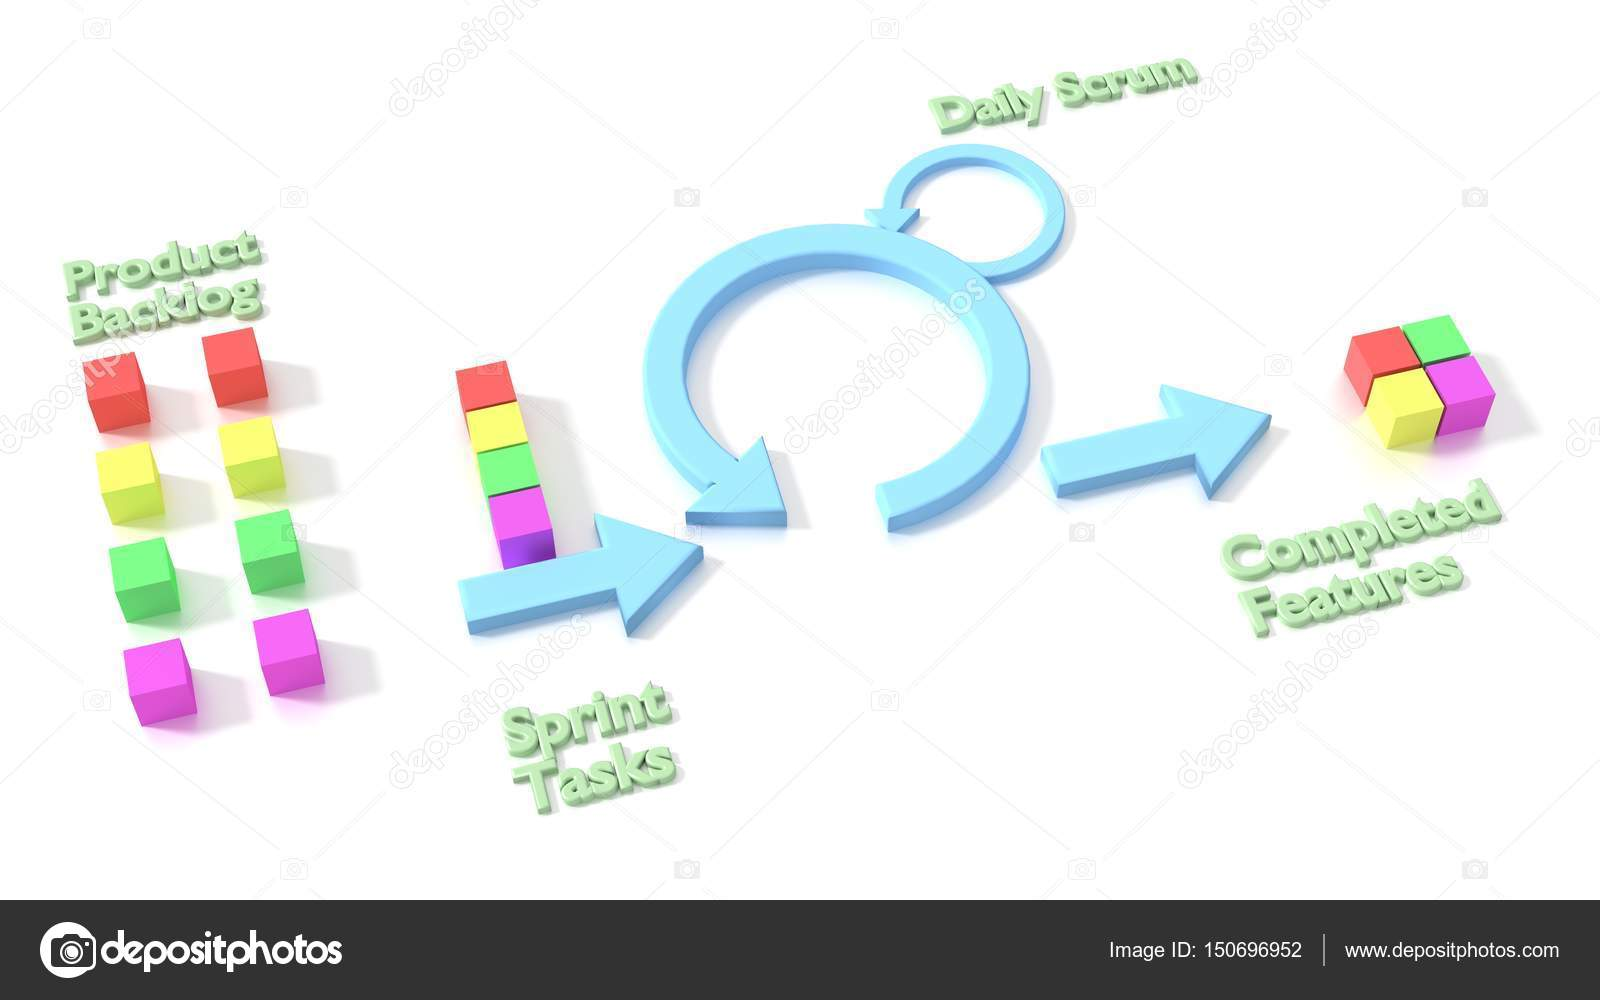 Agile scrum software development methodology diagram on white agile scrum software development methodology diagram on white background 3d illustration photo by beebright ccuart Gallery